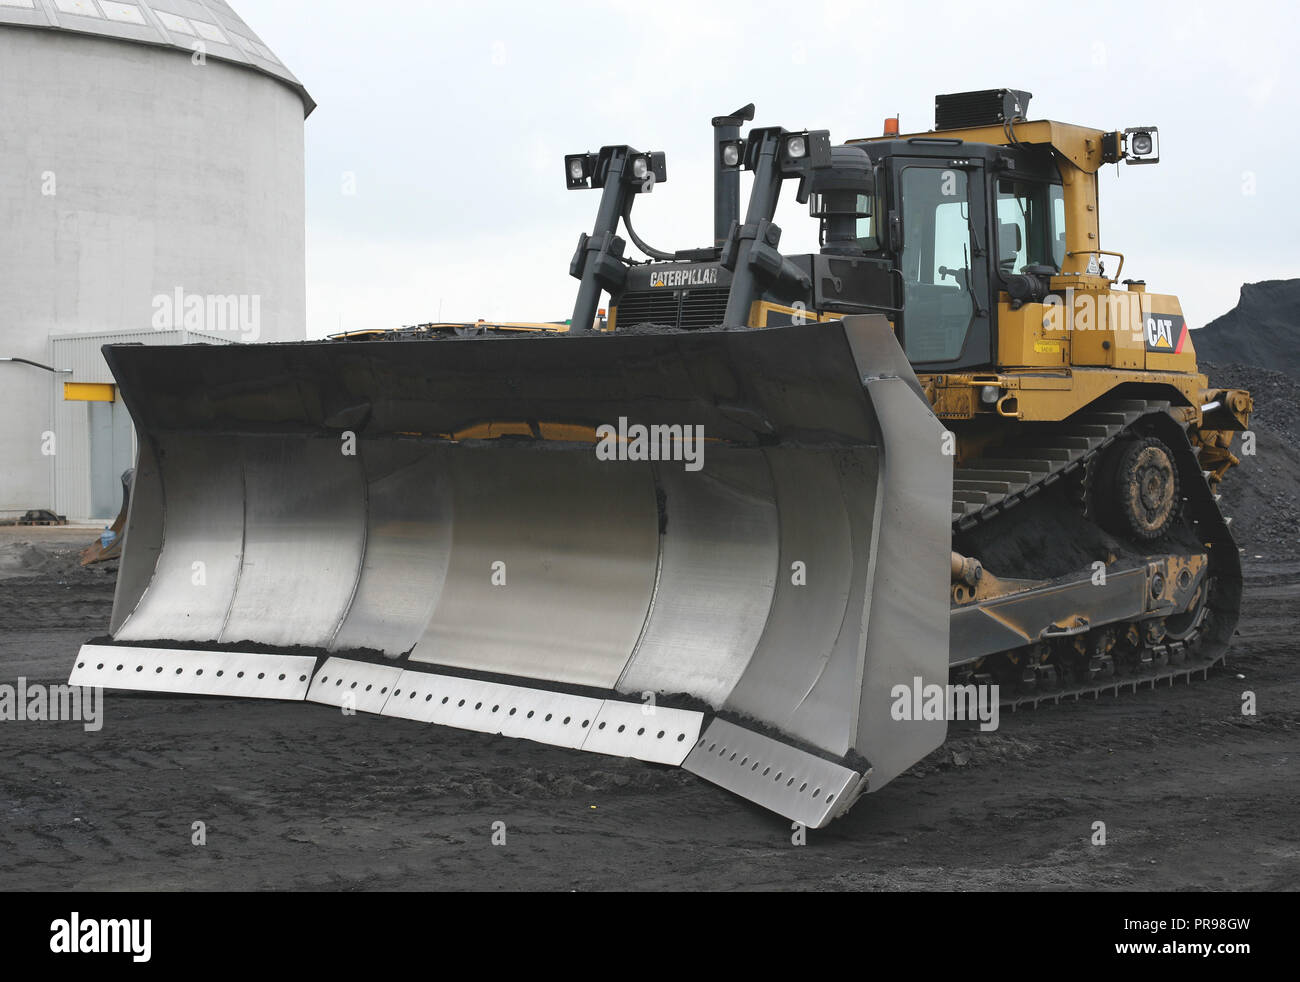 Caterpillar D9T Coal Dozer owned By Chepstow Plant Hire working at